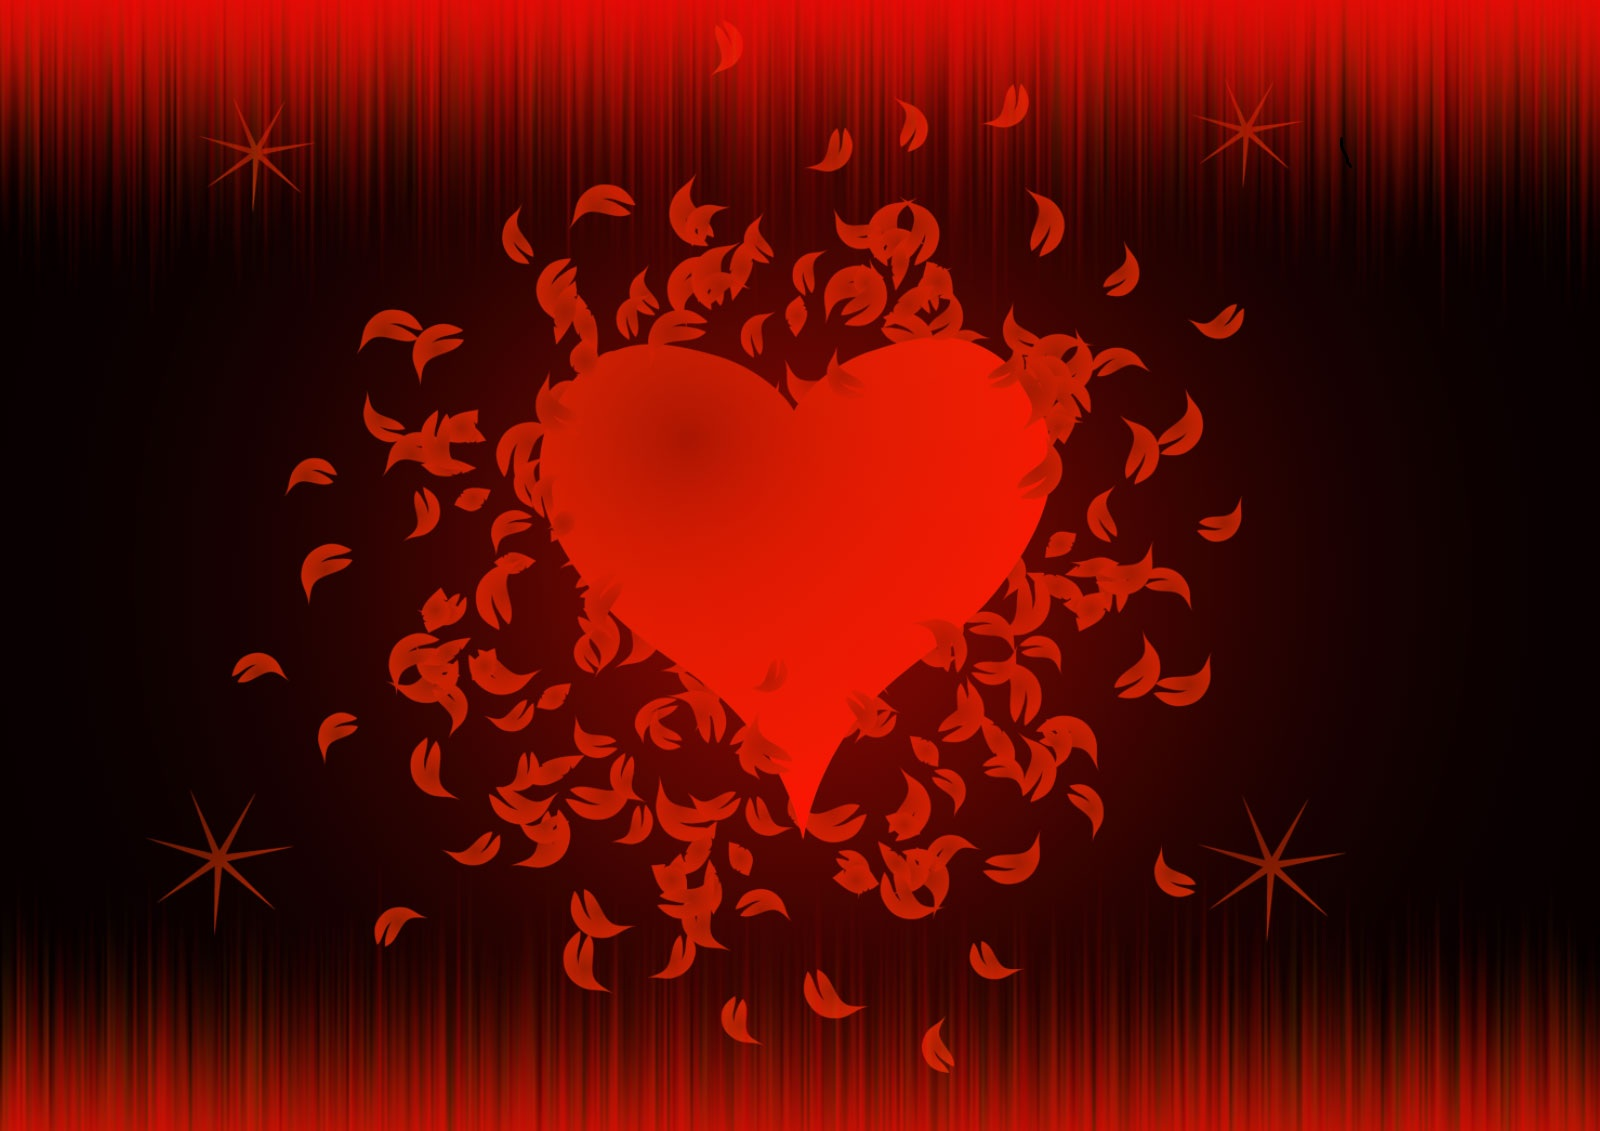 Valentines Day Backgrounds Valentines Day Desktop Wallpapers 1600x1131